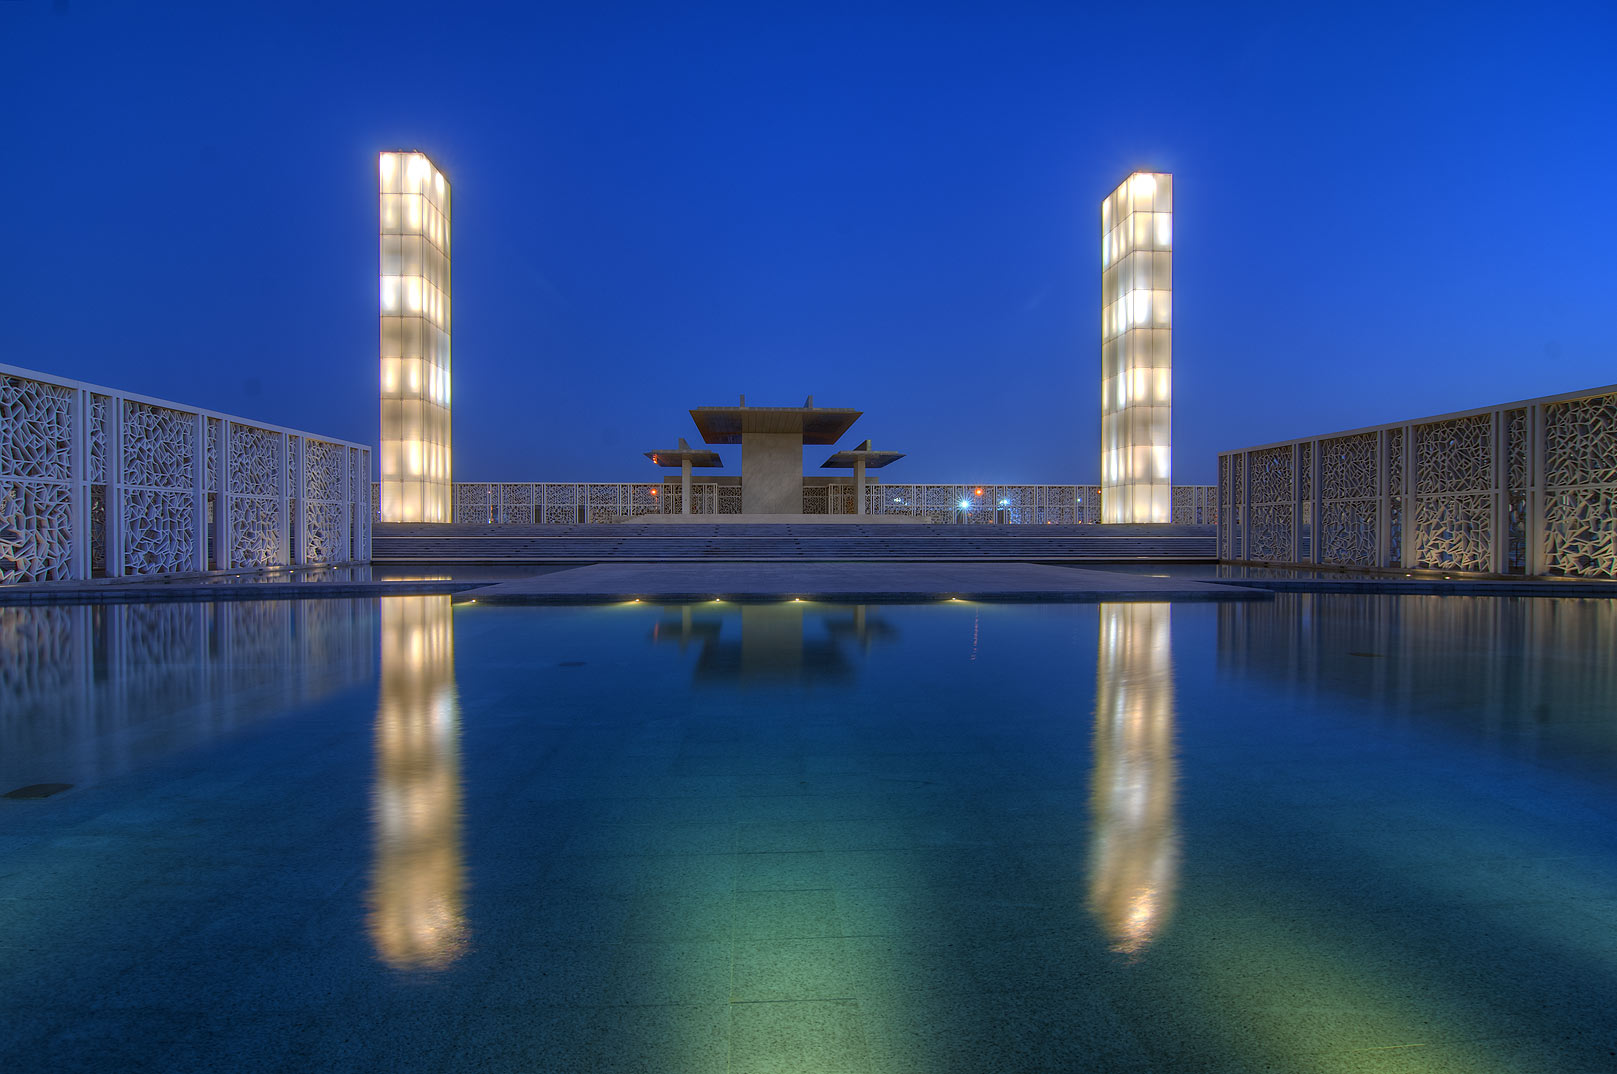 Pool of Ceremonial Court in Education City campus. Doha, Qatar